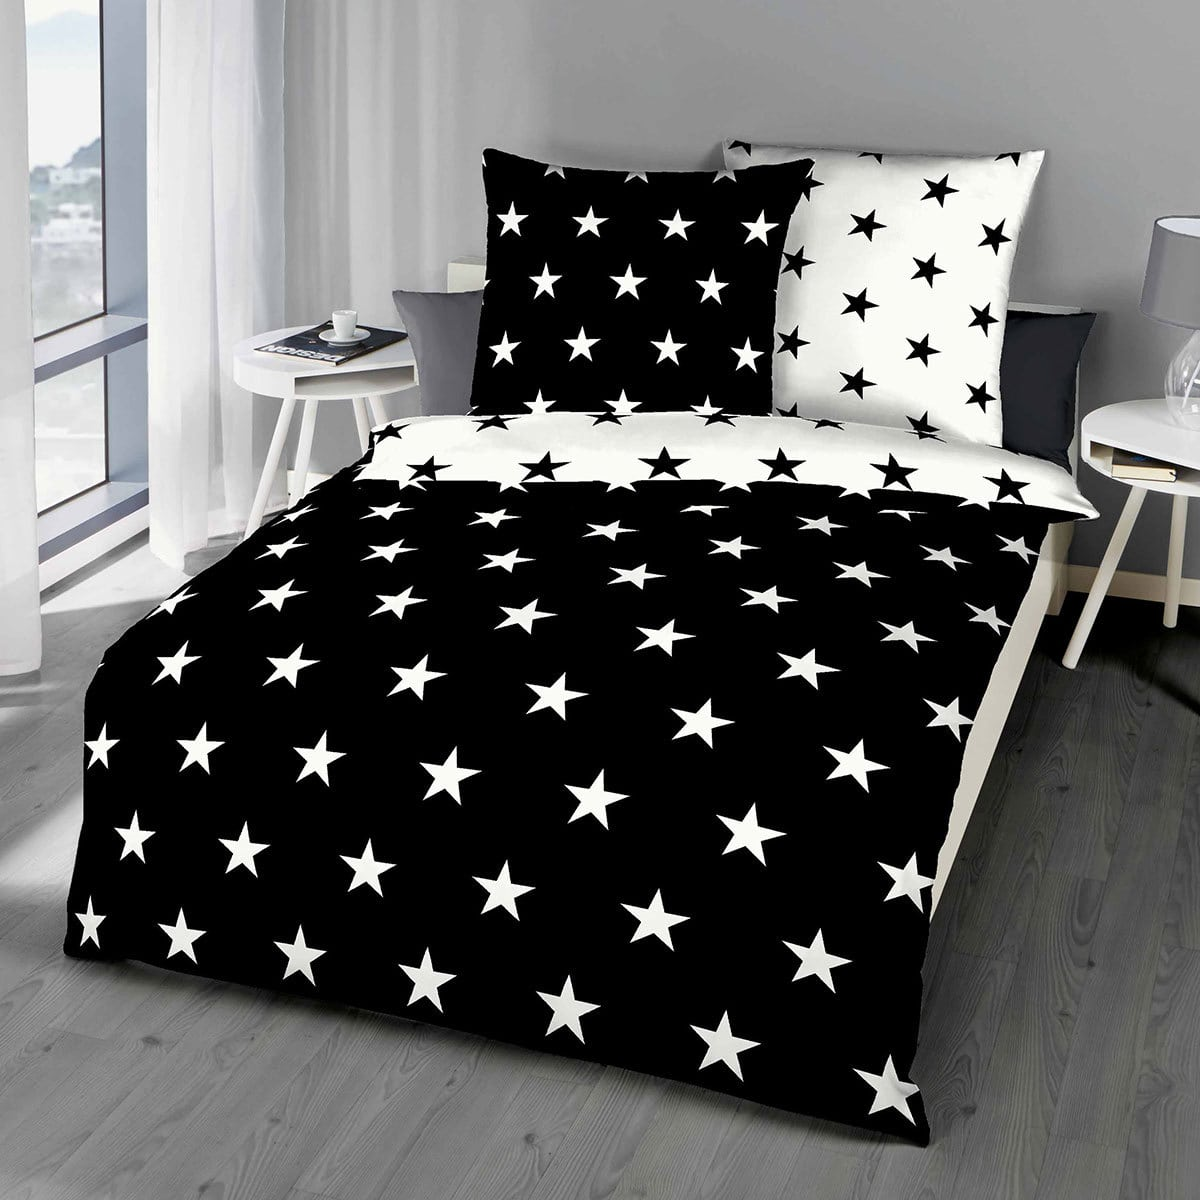 bettwarenshop biber bettw sche stars schwarz g nstig. Black Bedroom Furniture Sets. Home Design Ideas